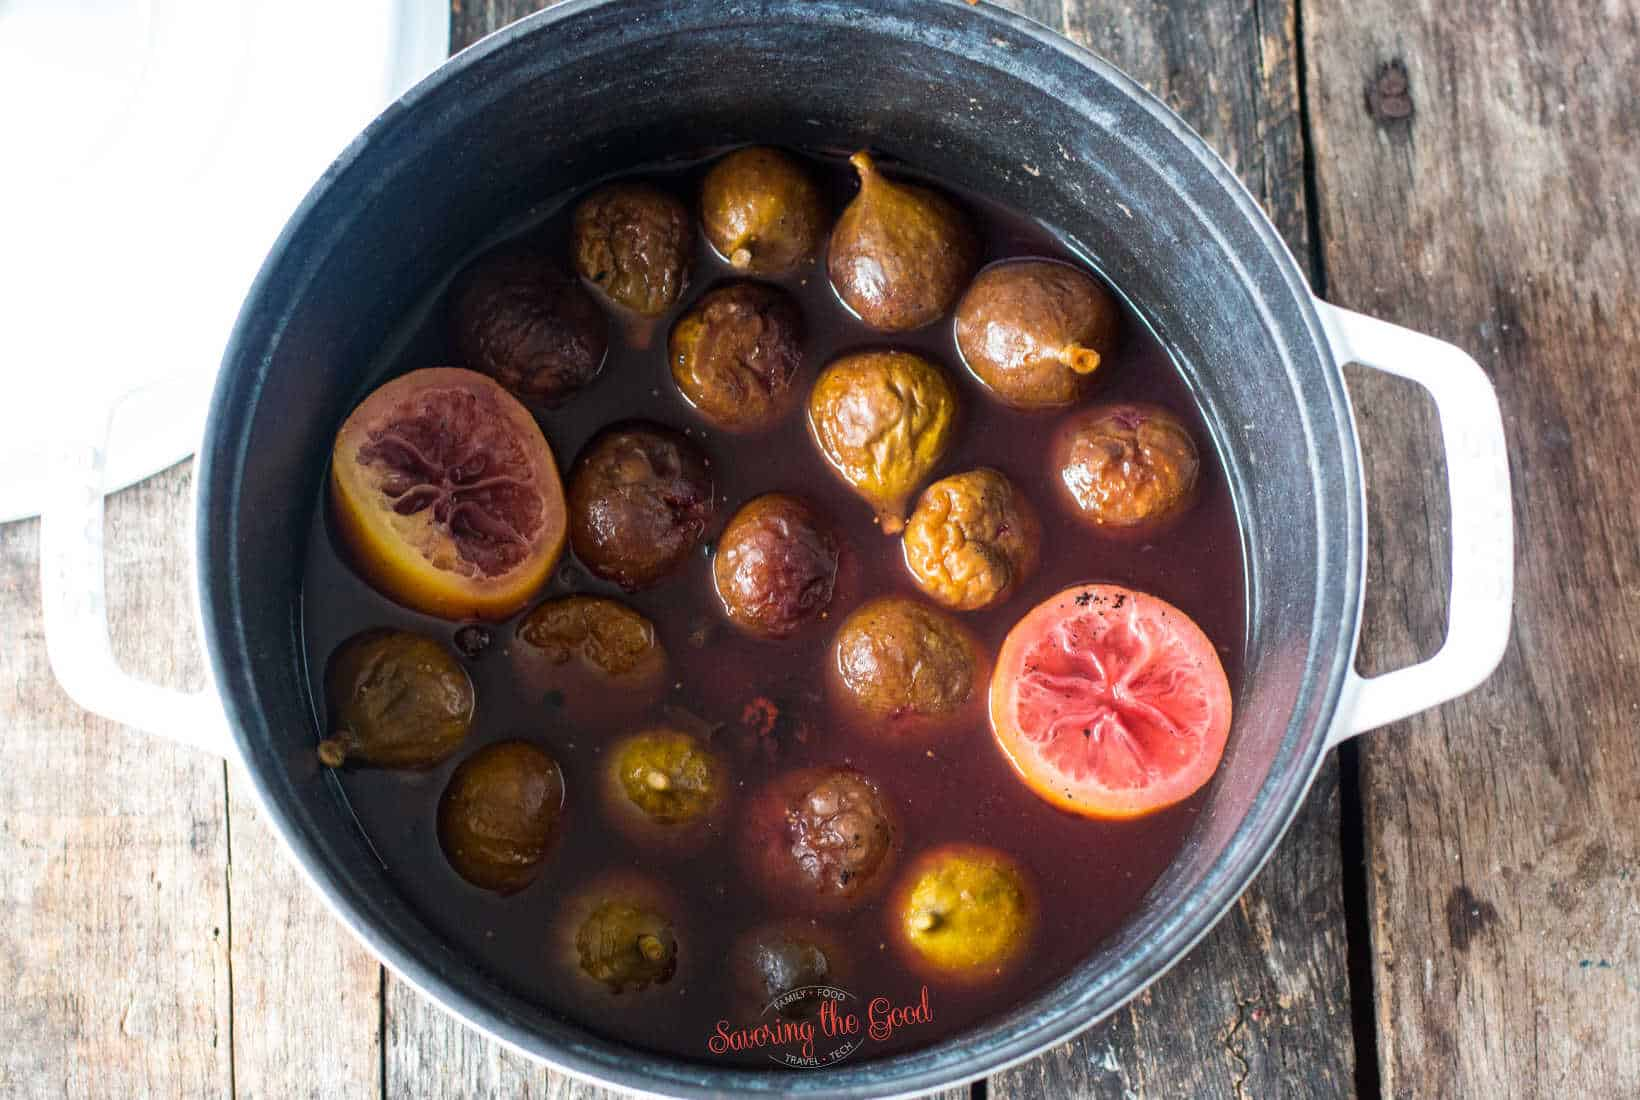 figs being poached in the syrup, showing the wrinkling of the figs